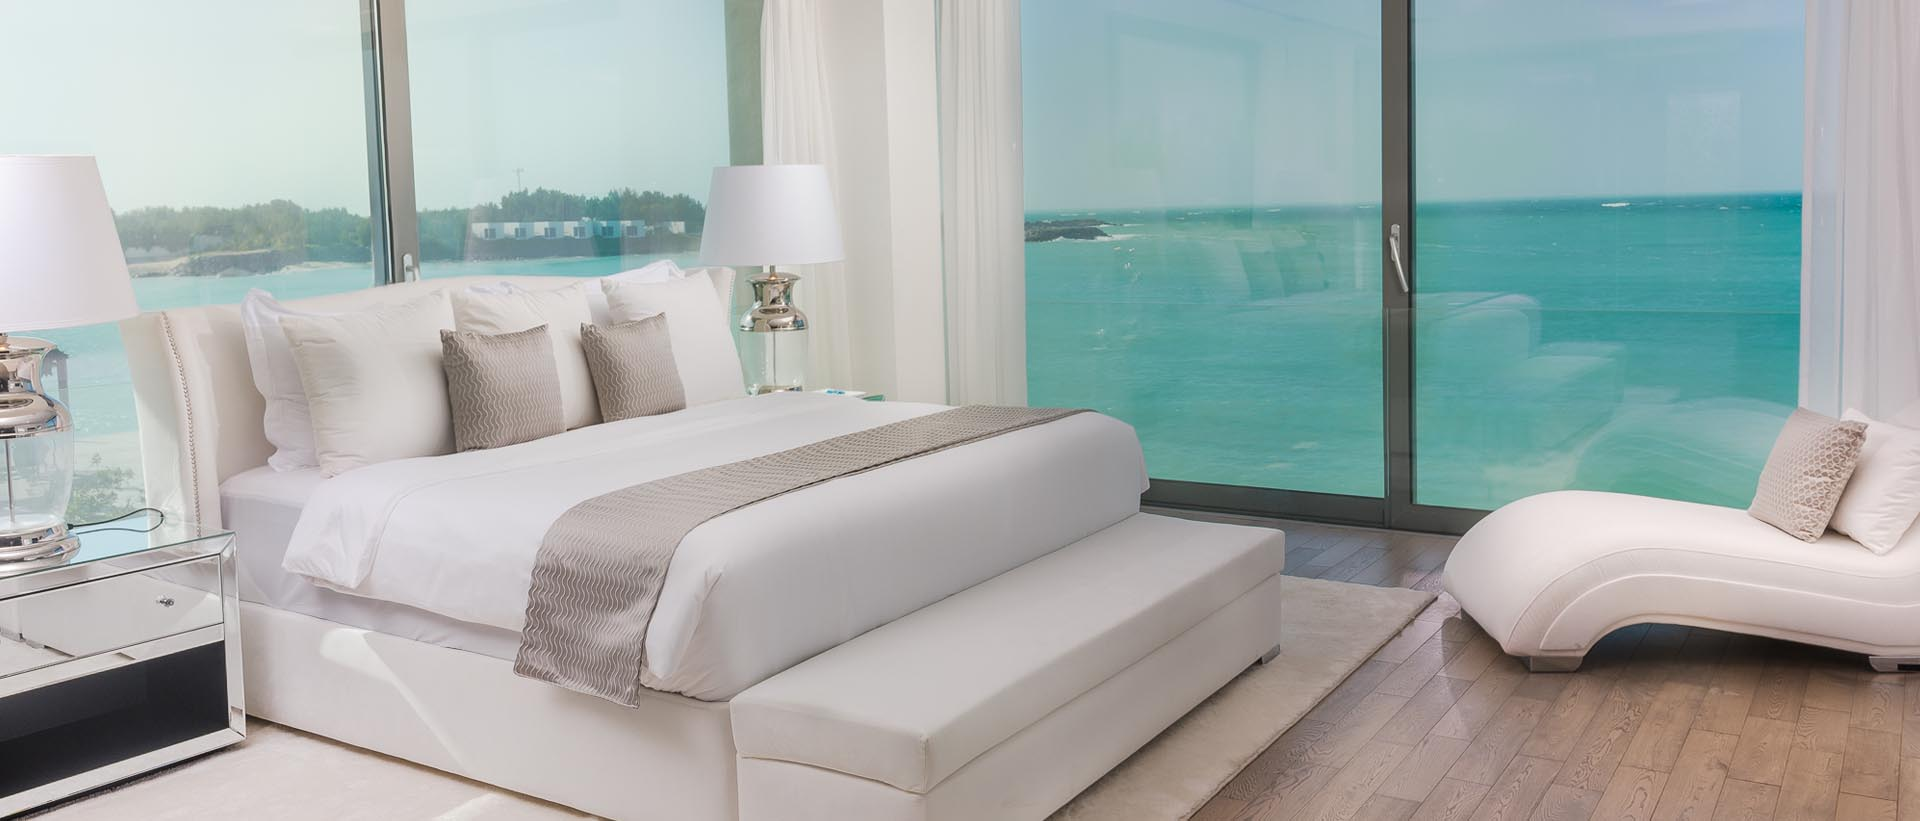 UPSTAIRS DREAM MASTER BEDROOM WITH KING BED AND TURQUOISE OCEAN VIEW